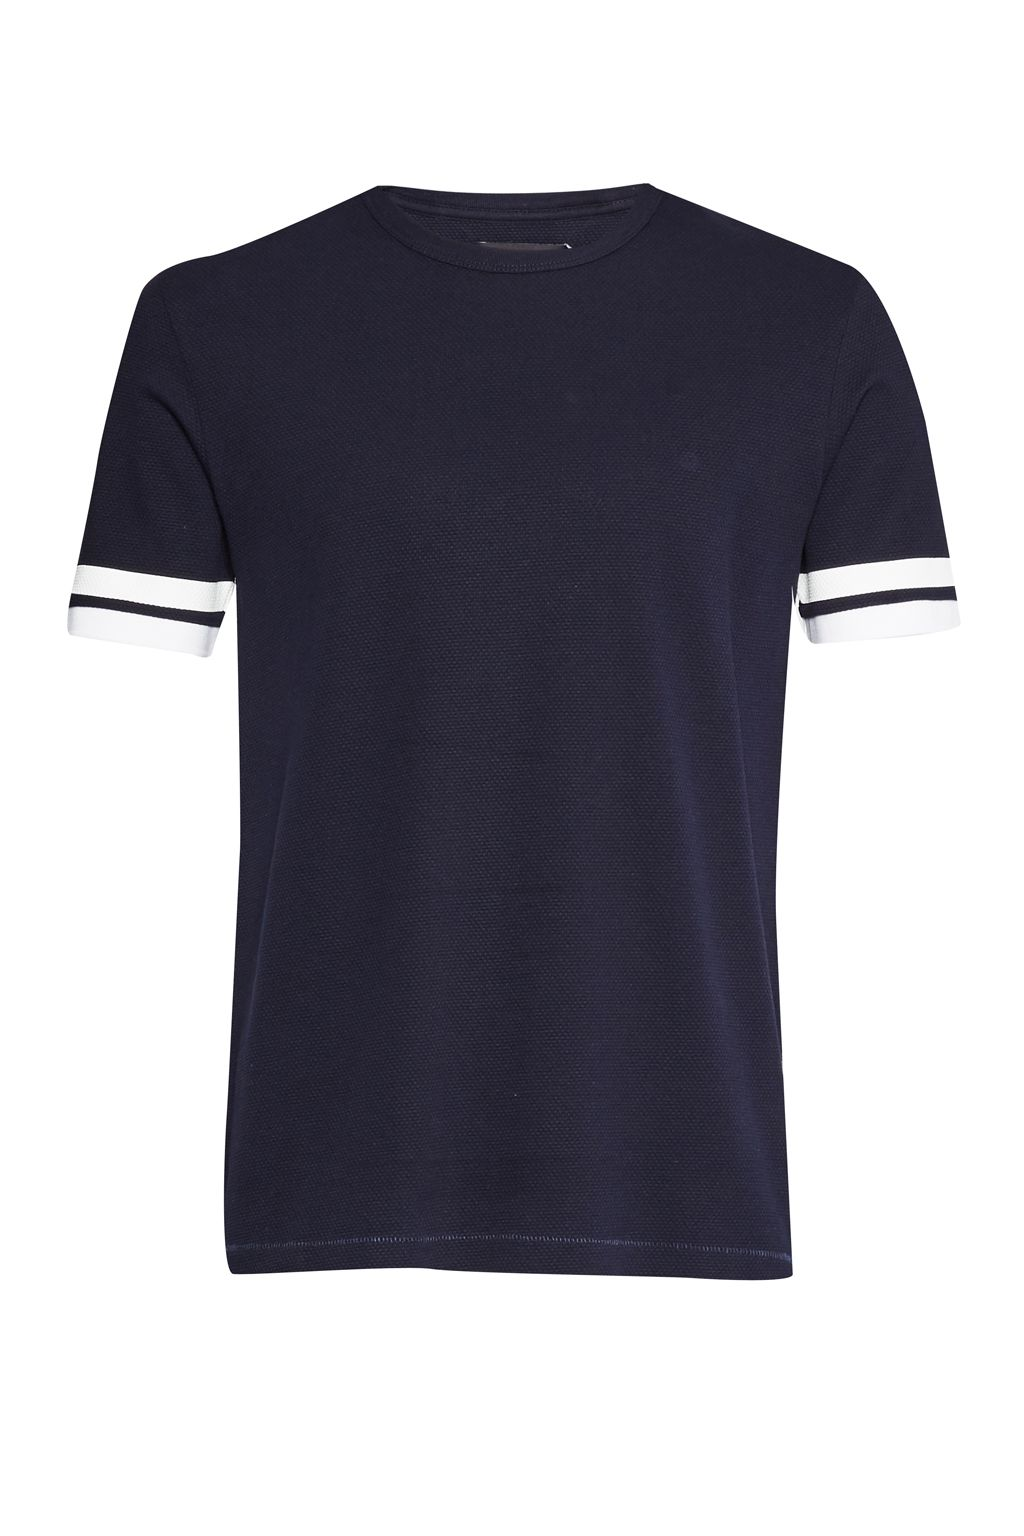 Men's French Connection Ampthill Pique Sleeve Tipping T-Shirt, Blue